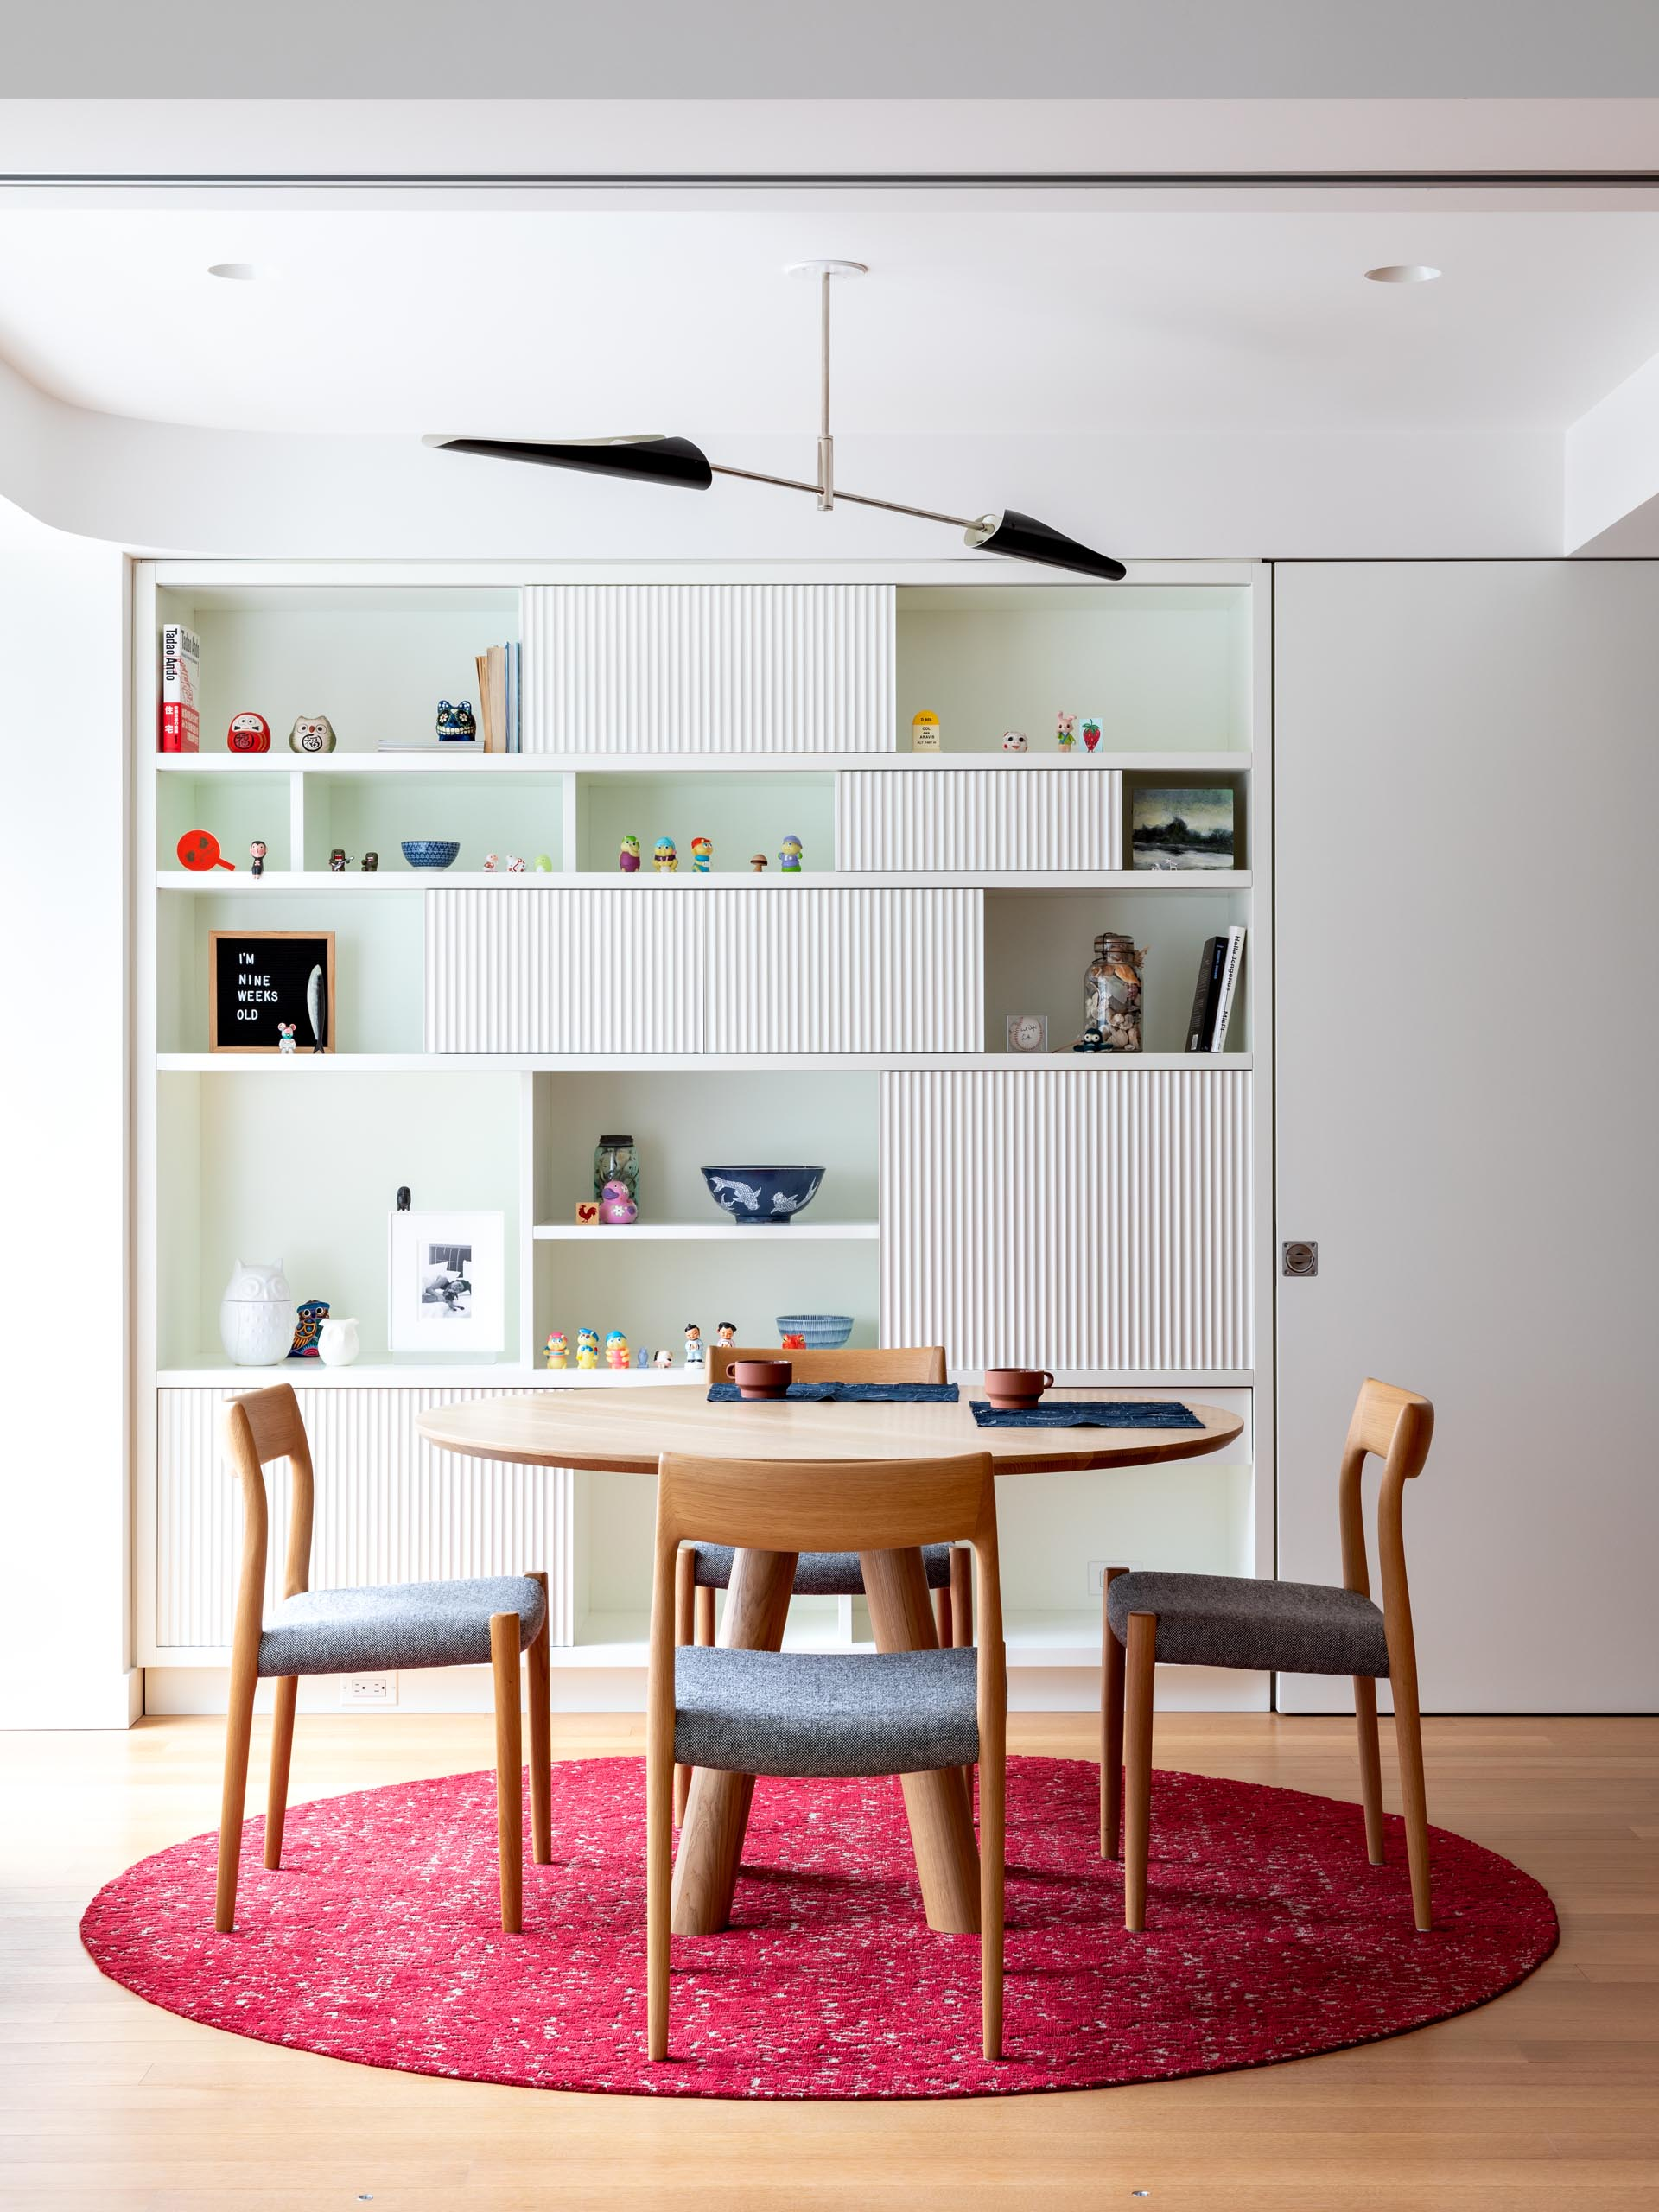 This modern dining room has a large bookshelf with textured panes that's used for displaying decorative items.